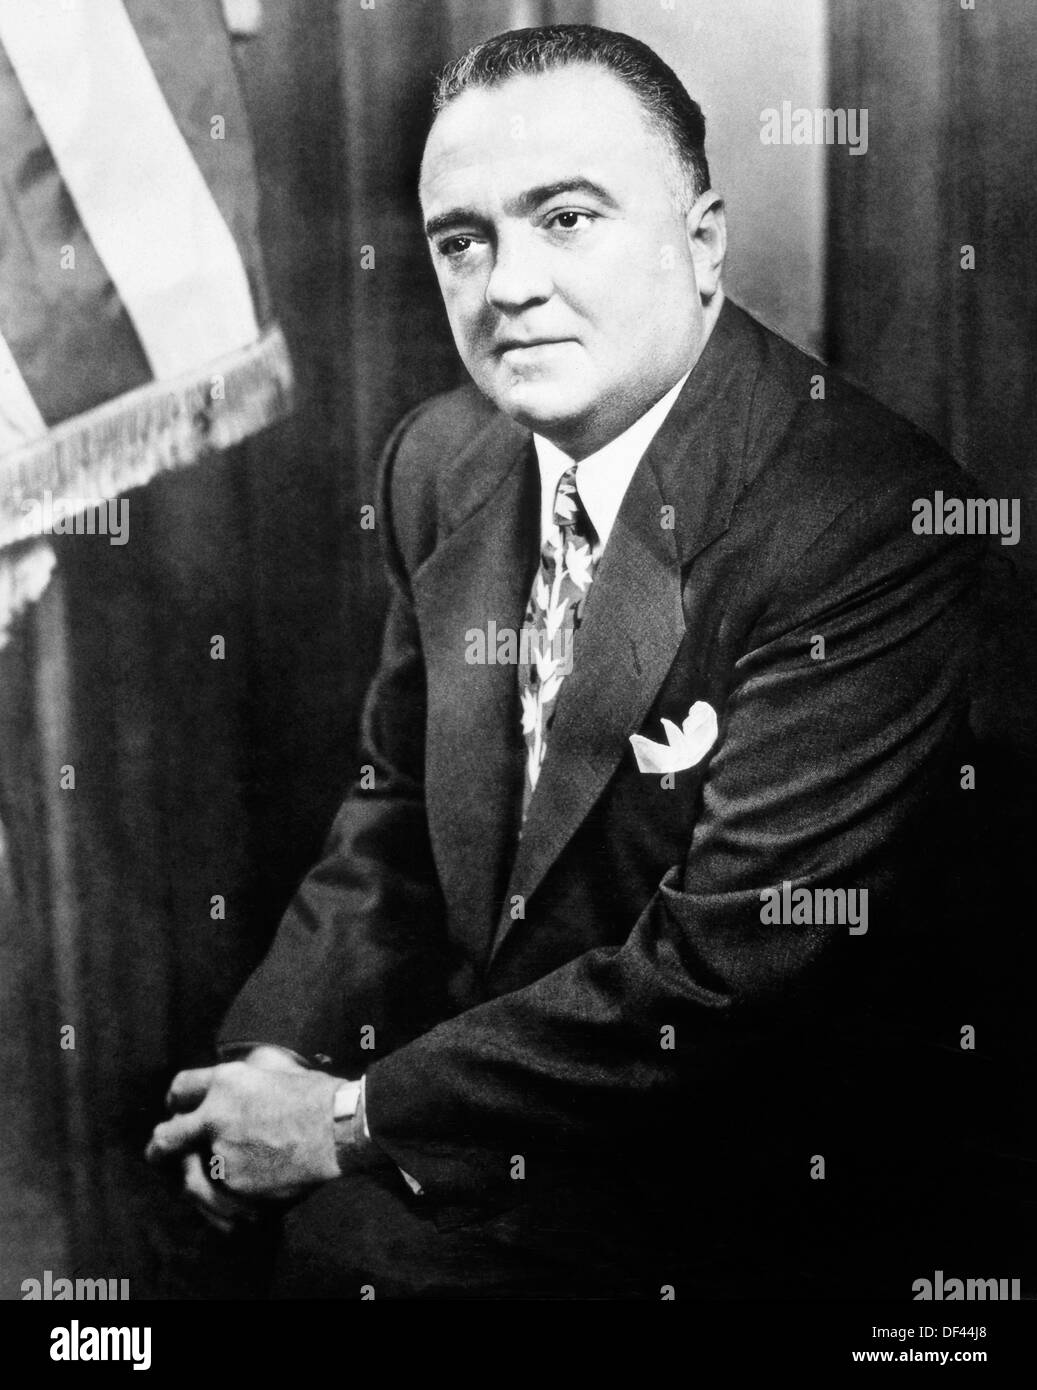 J. Edgar Hoover (1895-1972), FBI Director, Portrait, Circa 1950's - Stock Image